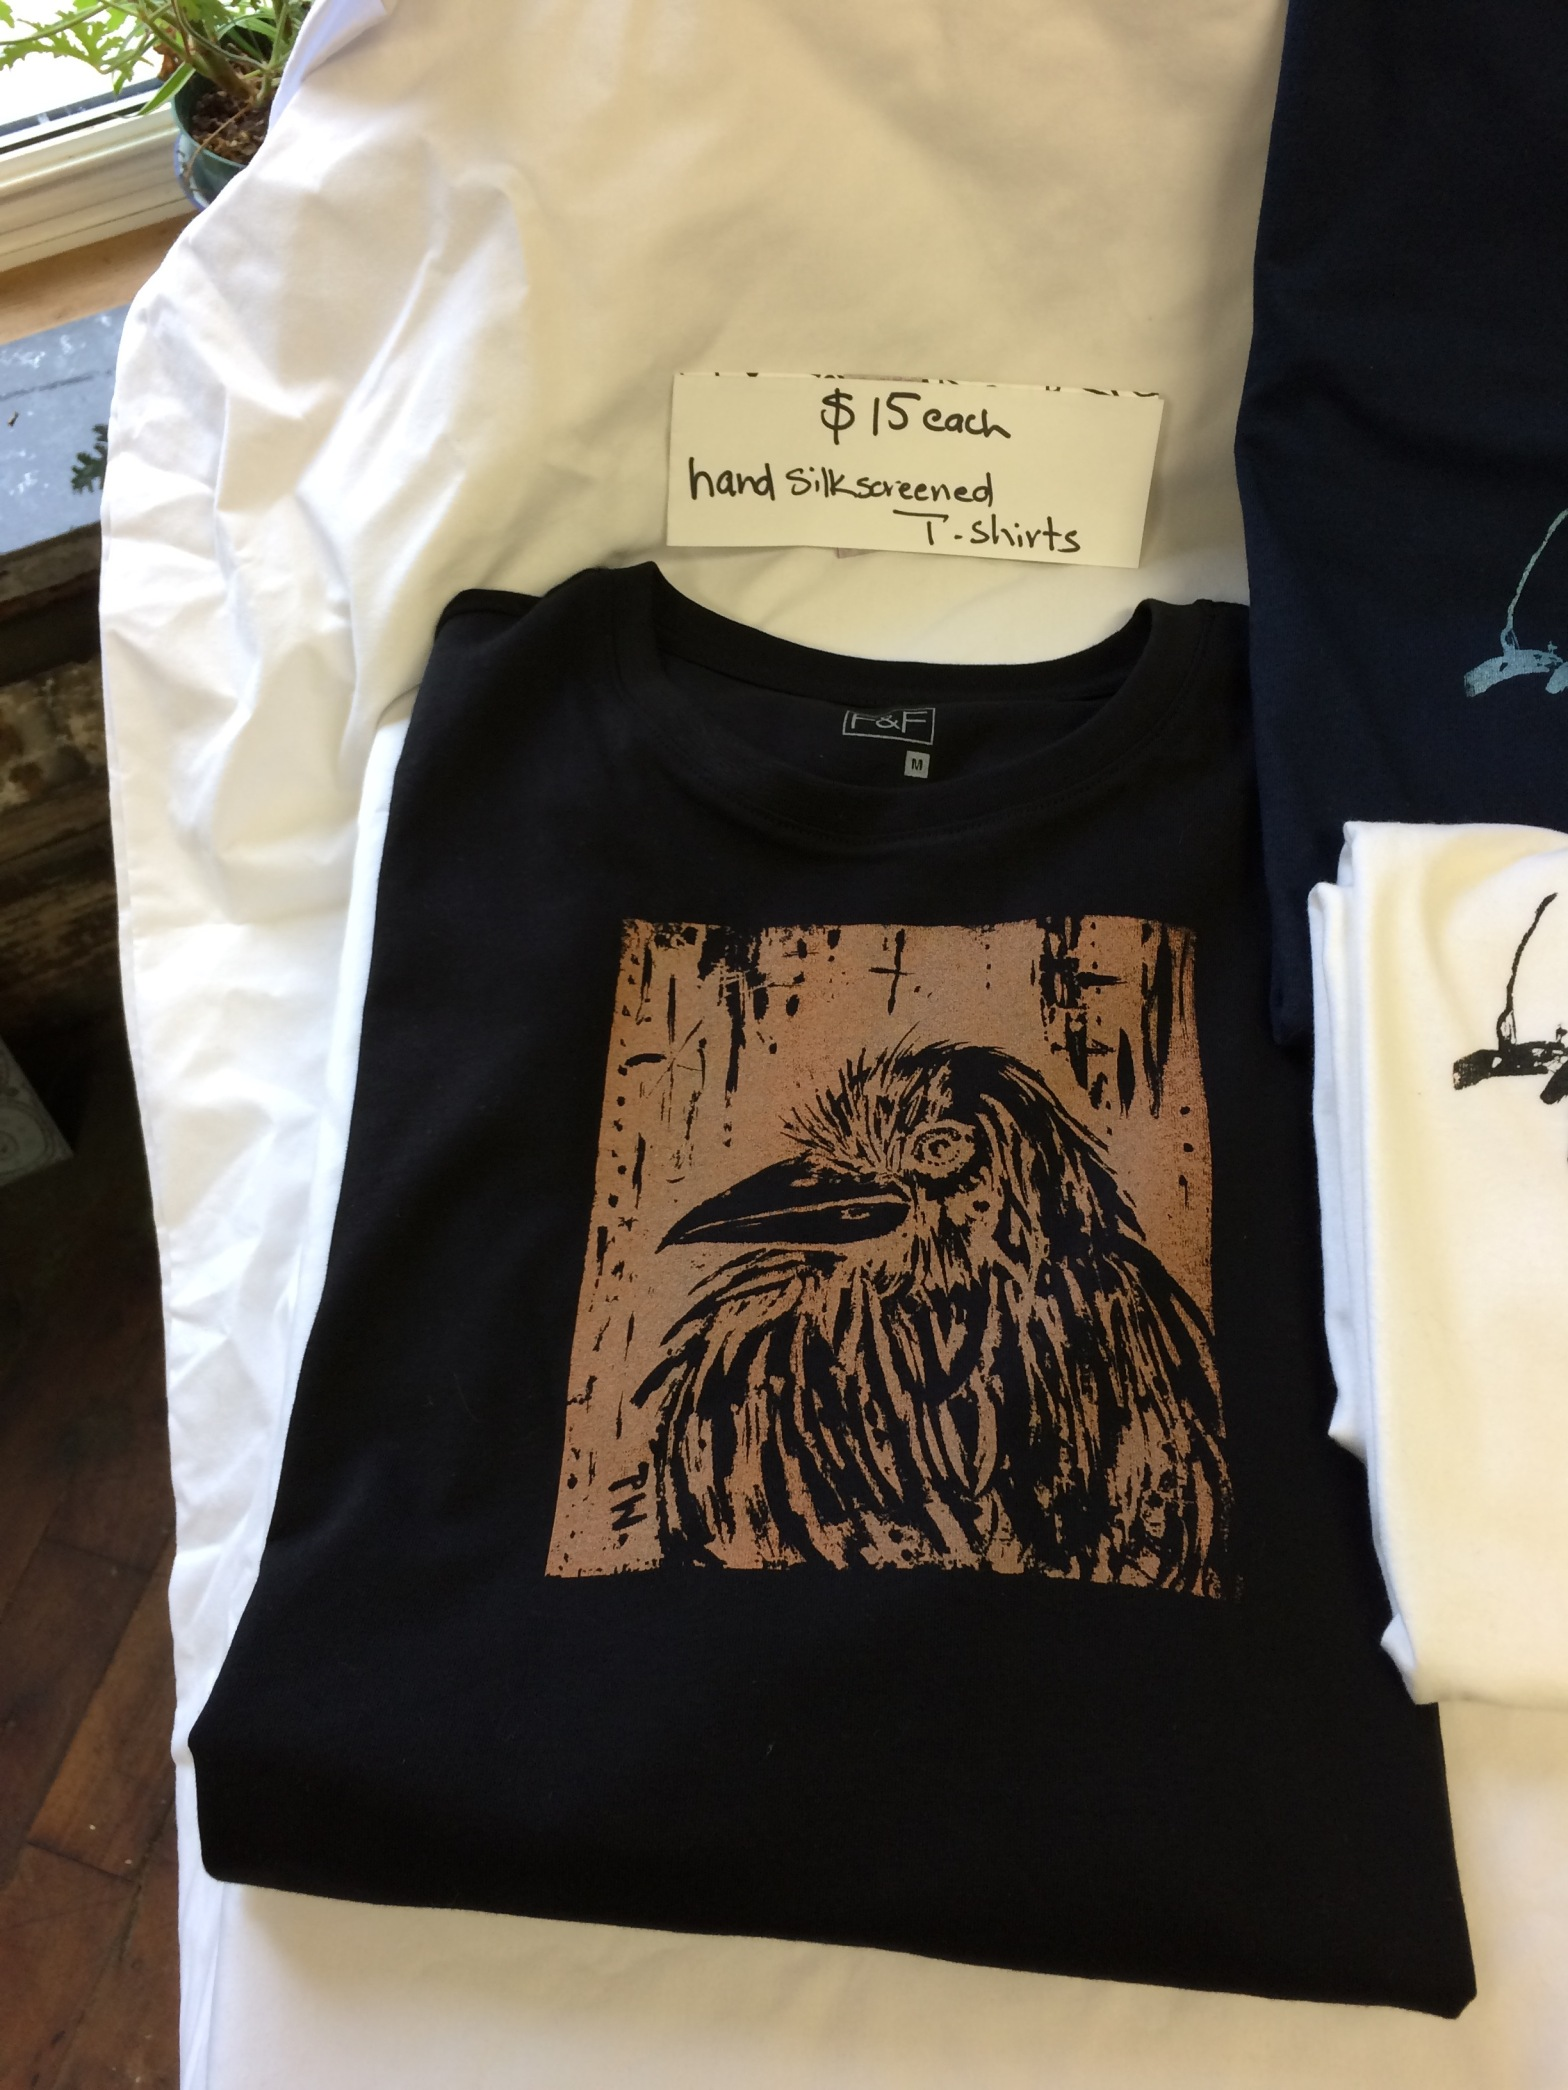 T-shirt, Raven motif, hand printed, silkscreened, original design